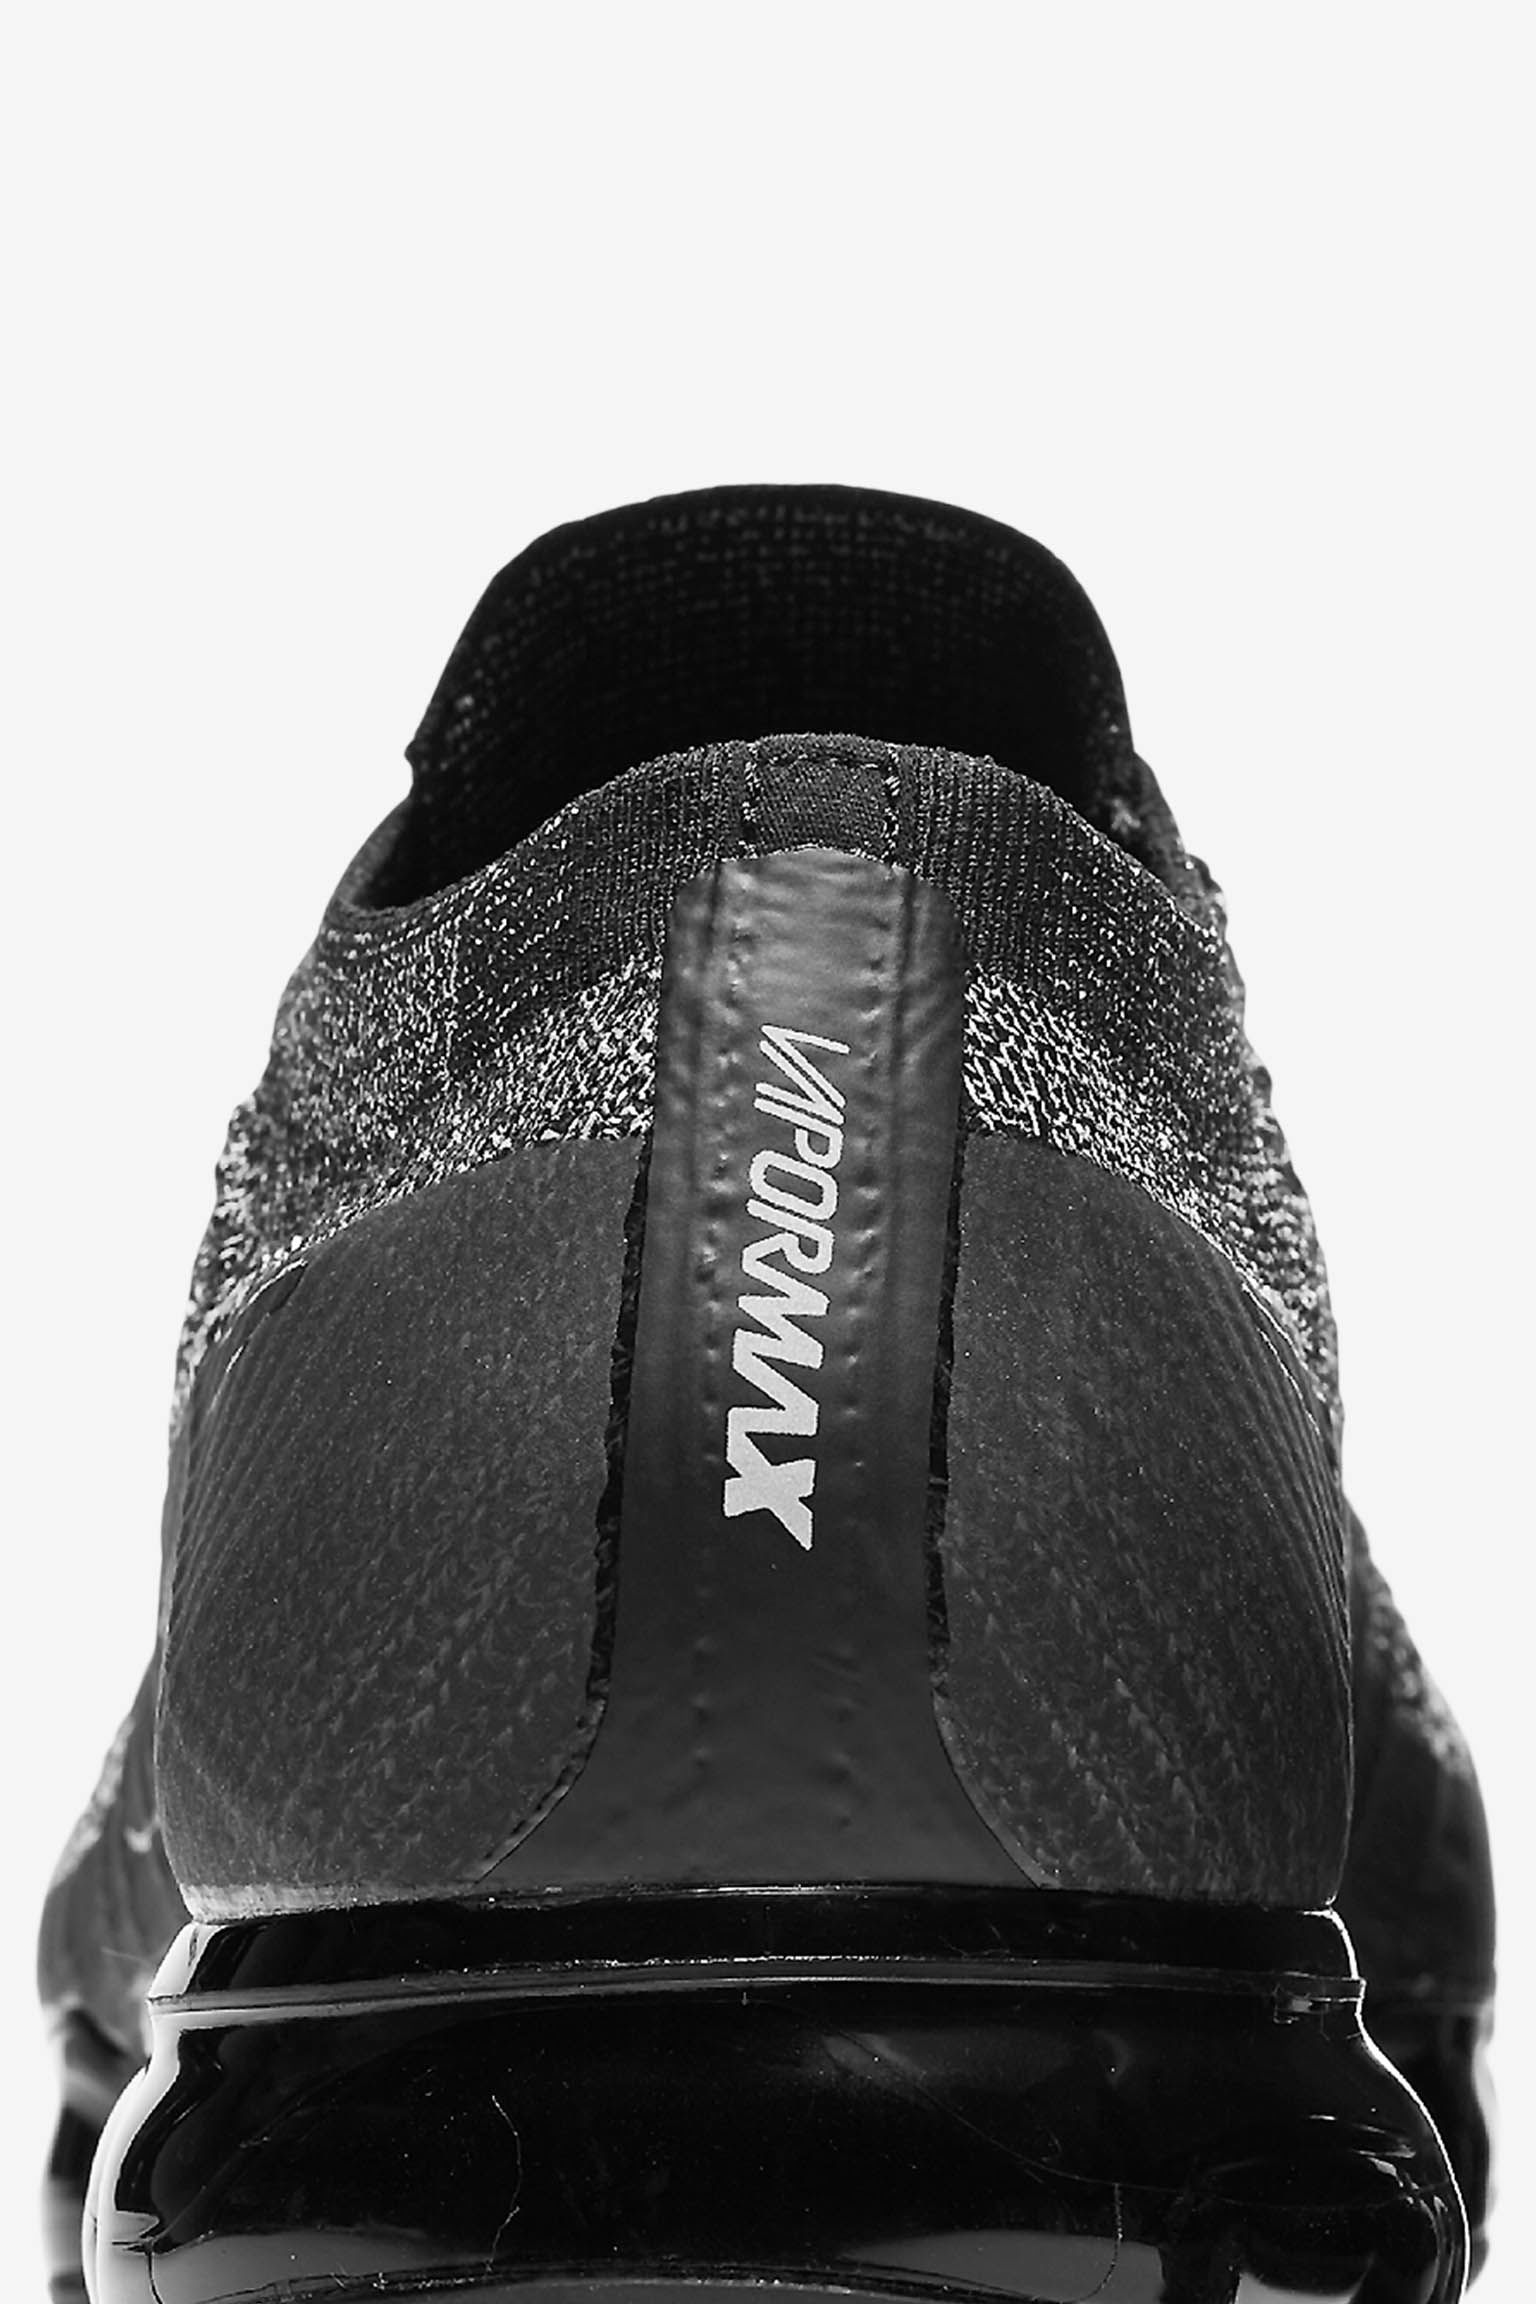 Nike Air VaporMax 'Black & White' 发布日期